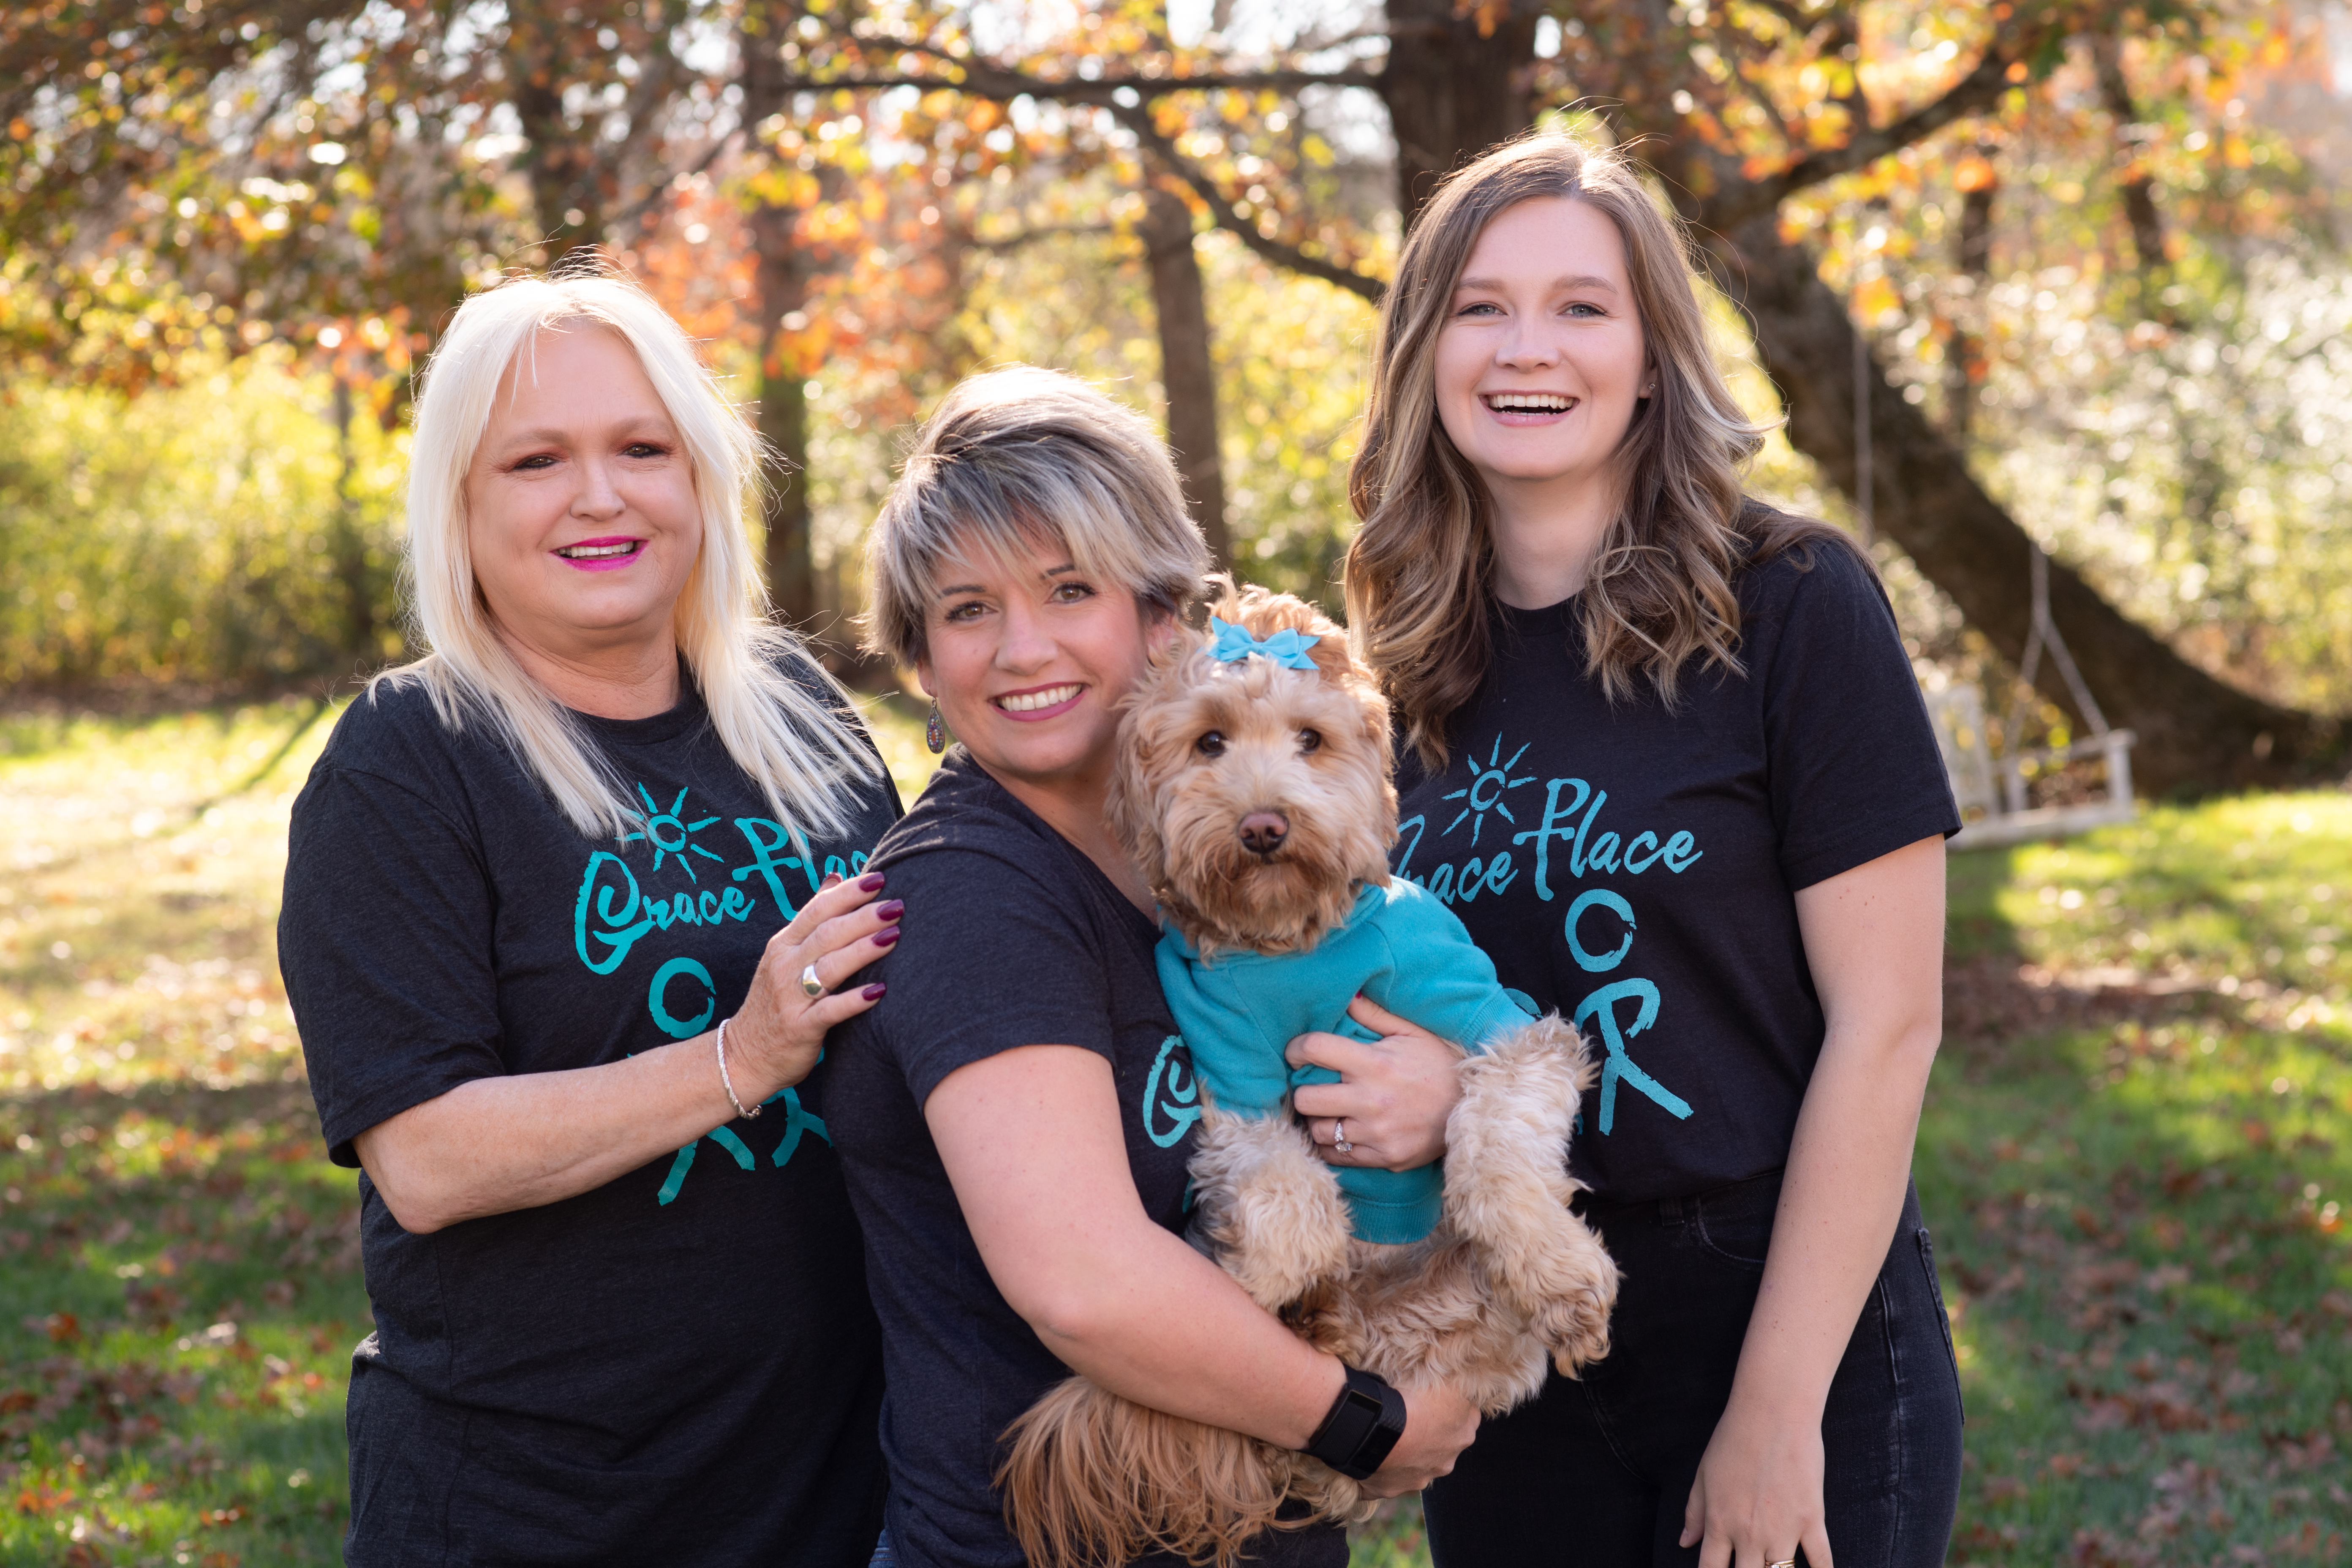 Grace Place Staff and Piper